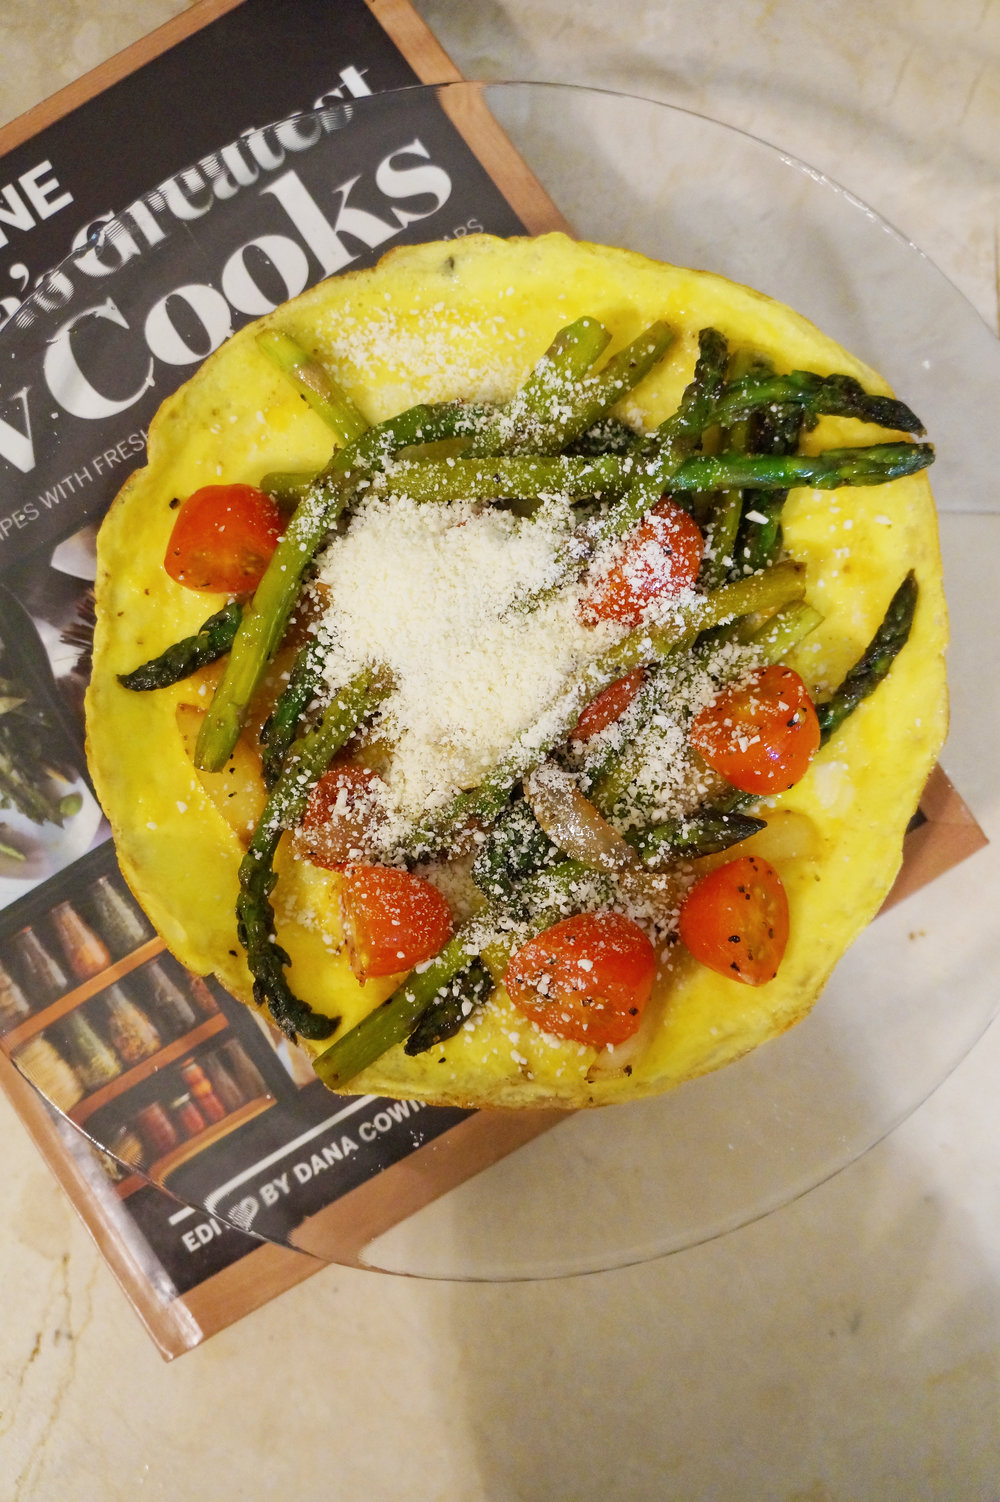 Andrea Fenise Memphis Fashion Blogger and Memphis Running Blogger shares post workout recipe with frittata with asparagus, tomatoes